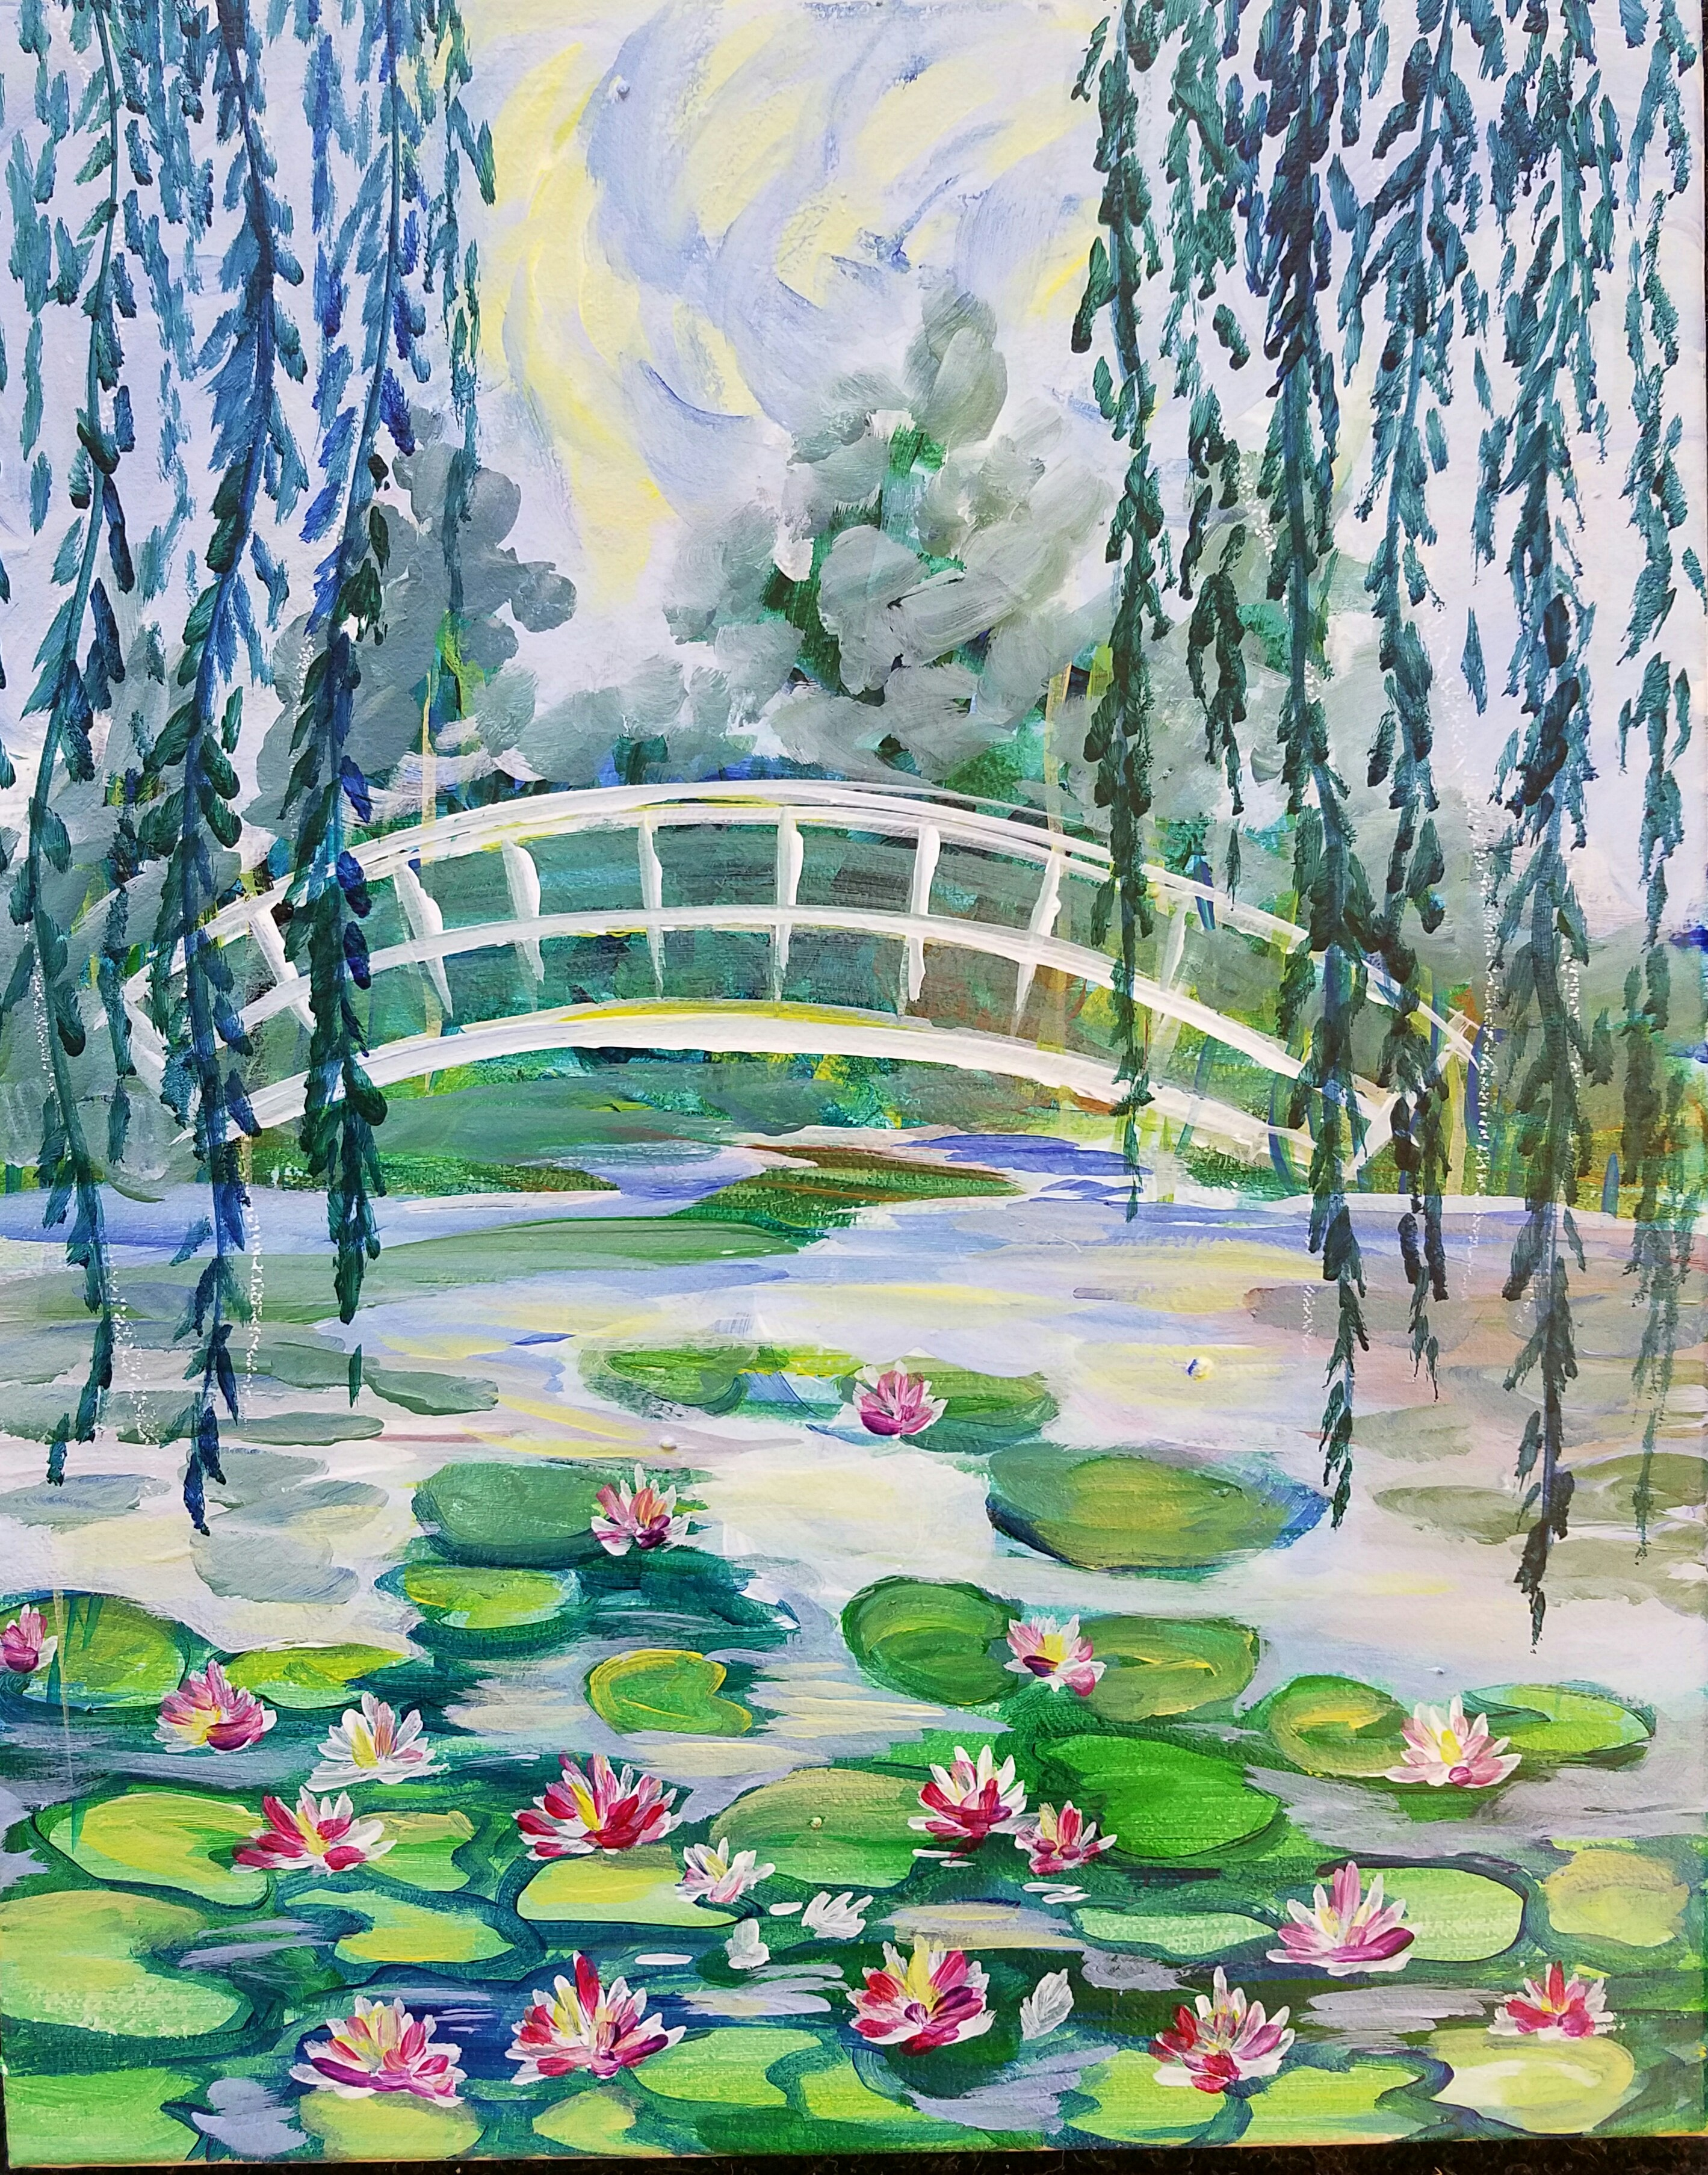 Monet The Water Lily Pond - 3 Hours